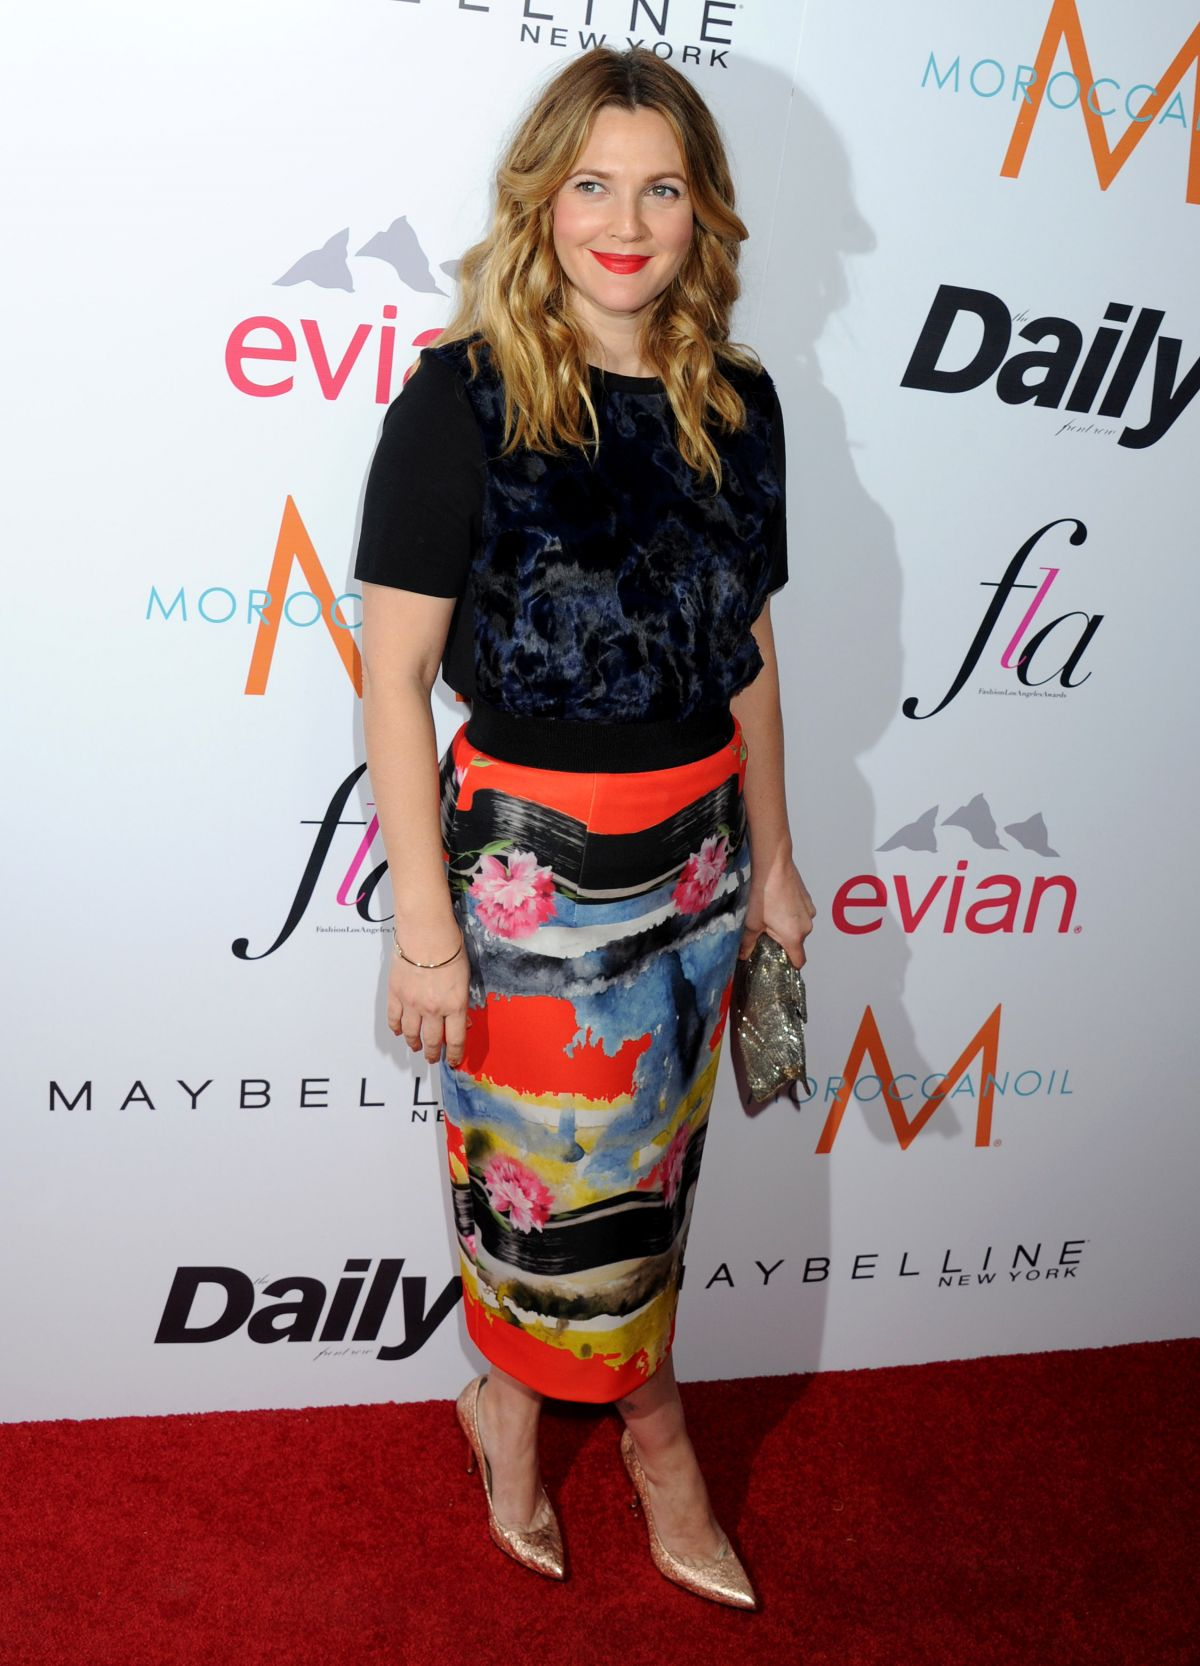 drew-barrymore-at-daily-front-row-fashion-los-angeles-awards-show_20